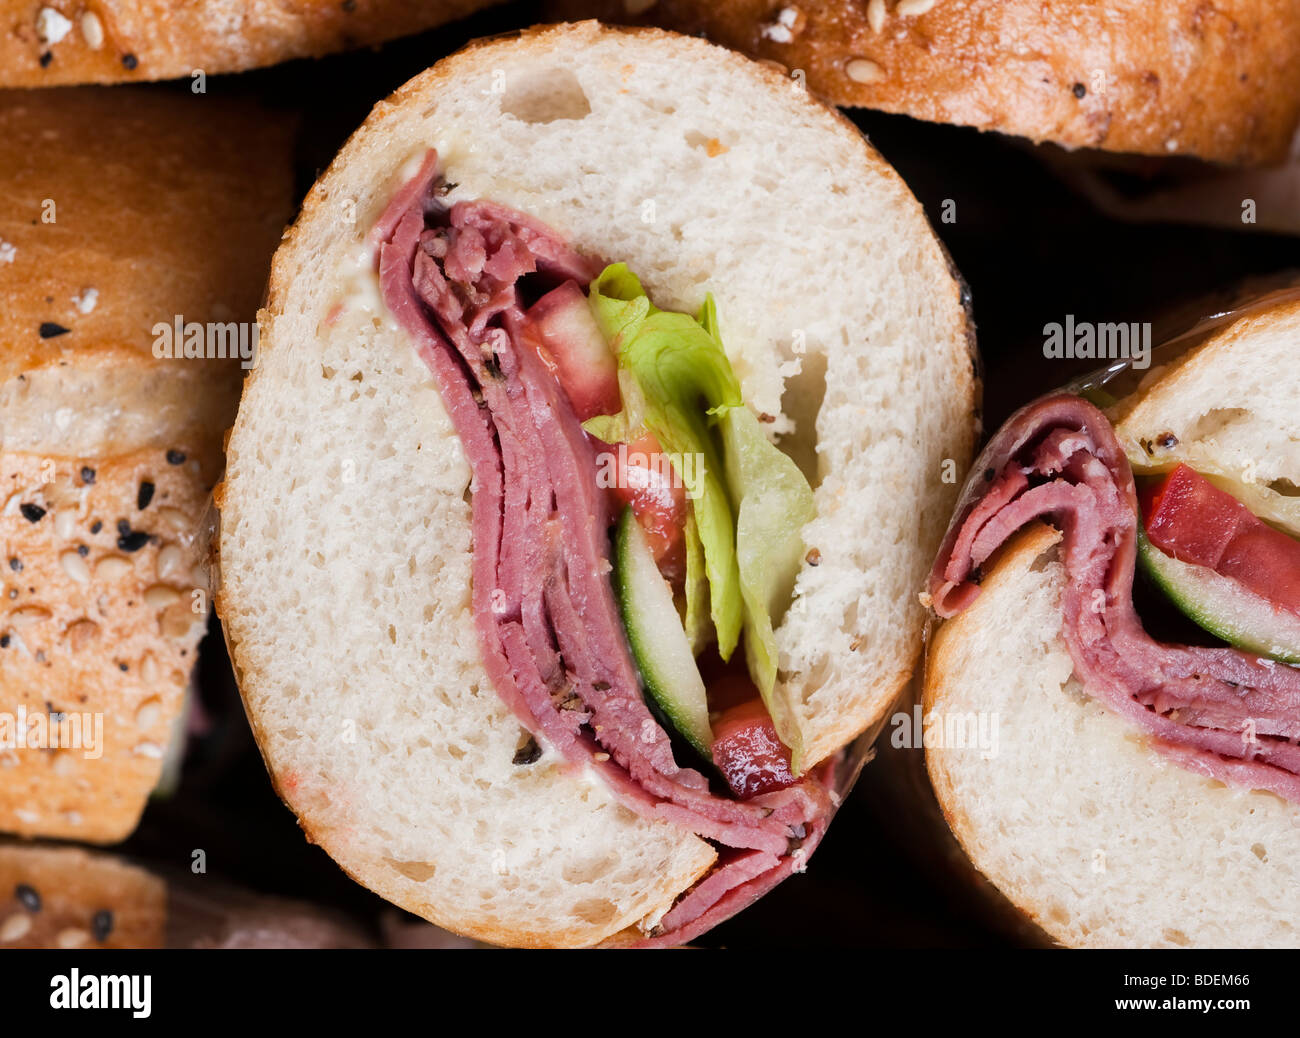 Side view of a pile of sandwiches - Stock Image